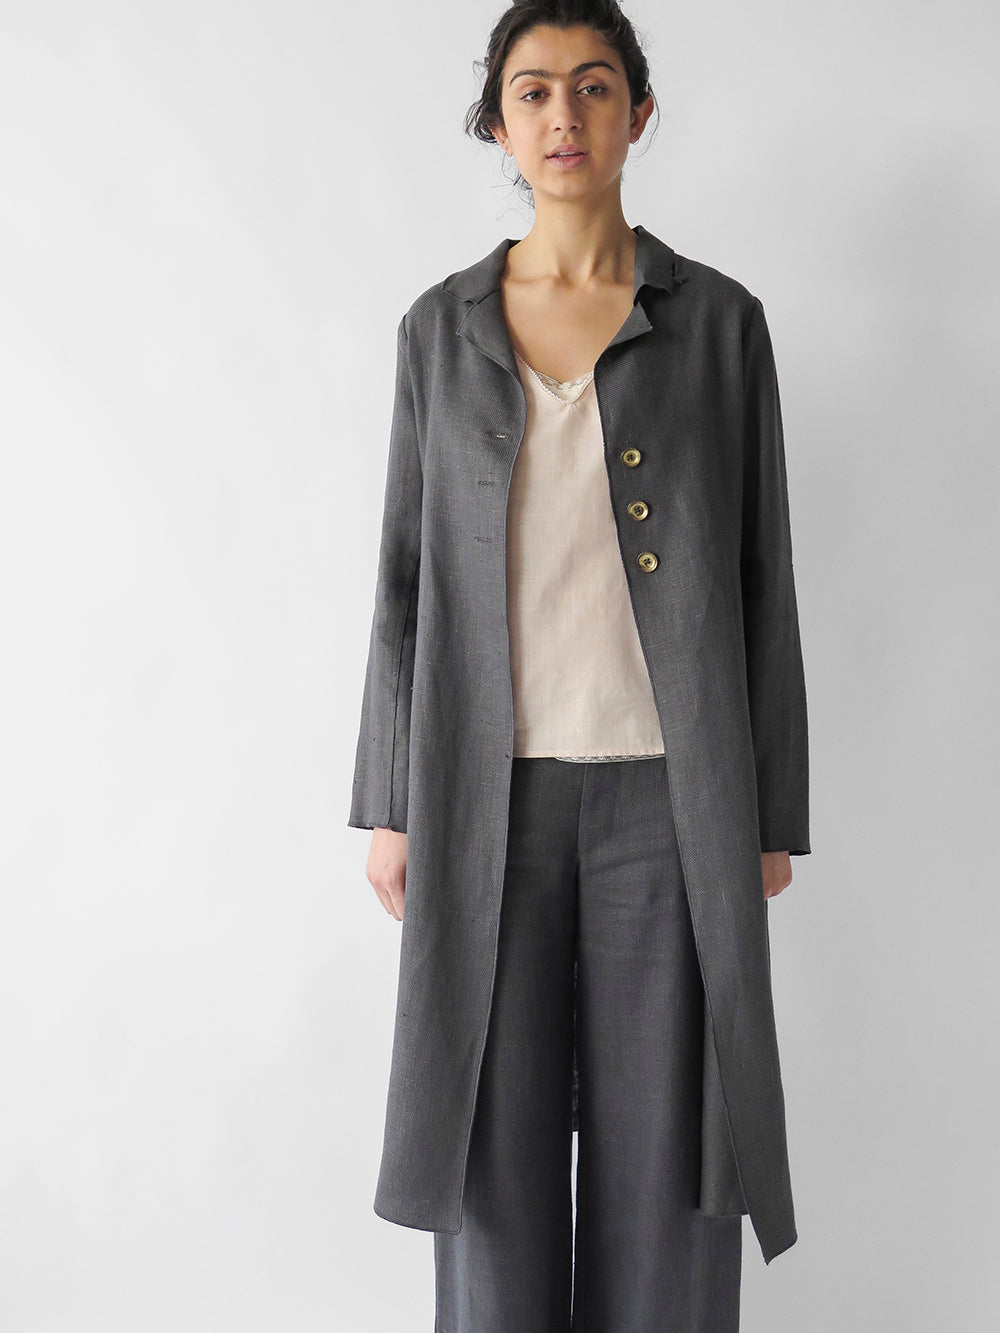 baudelaire coat in cinder